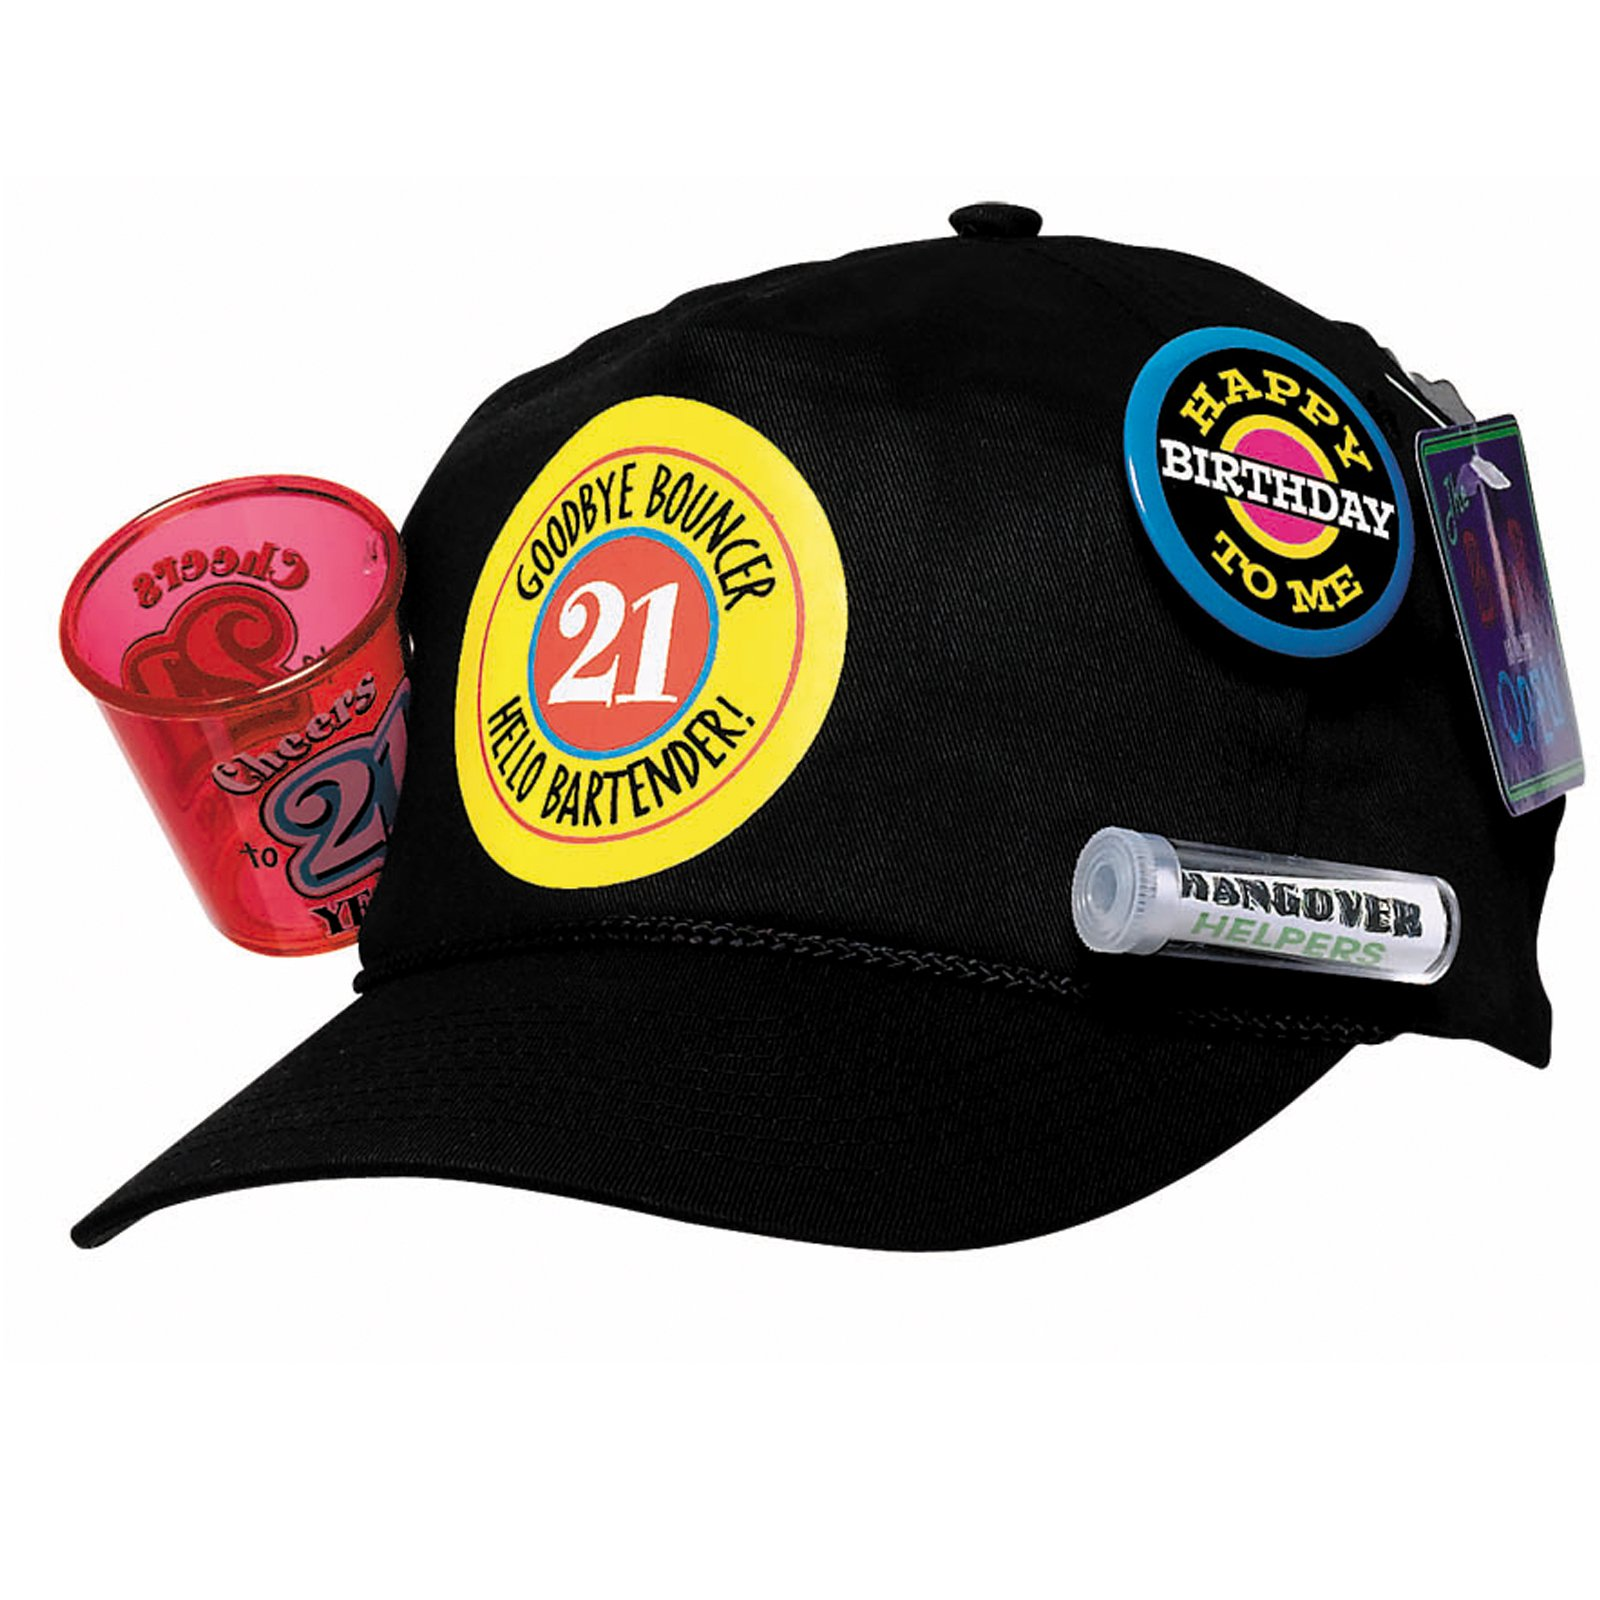 21st Birthday Survival Baseball Cap